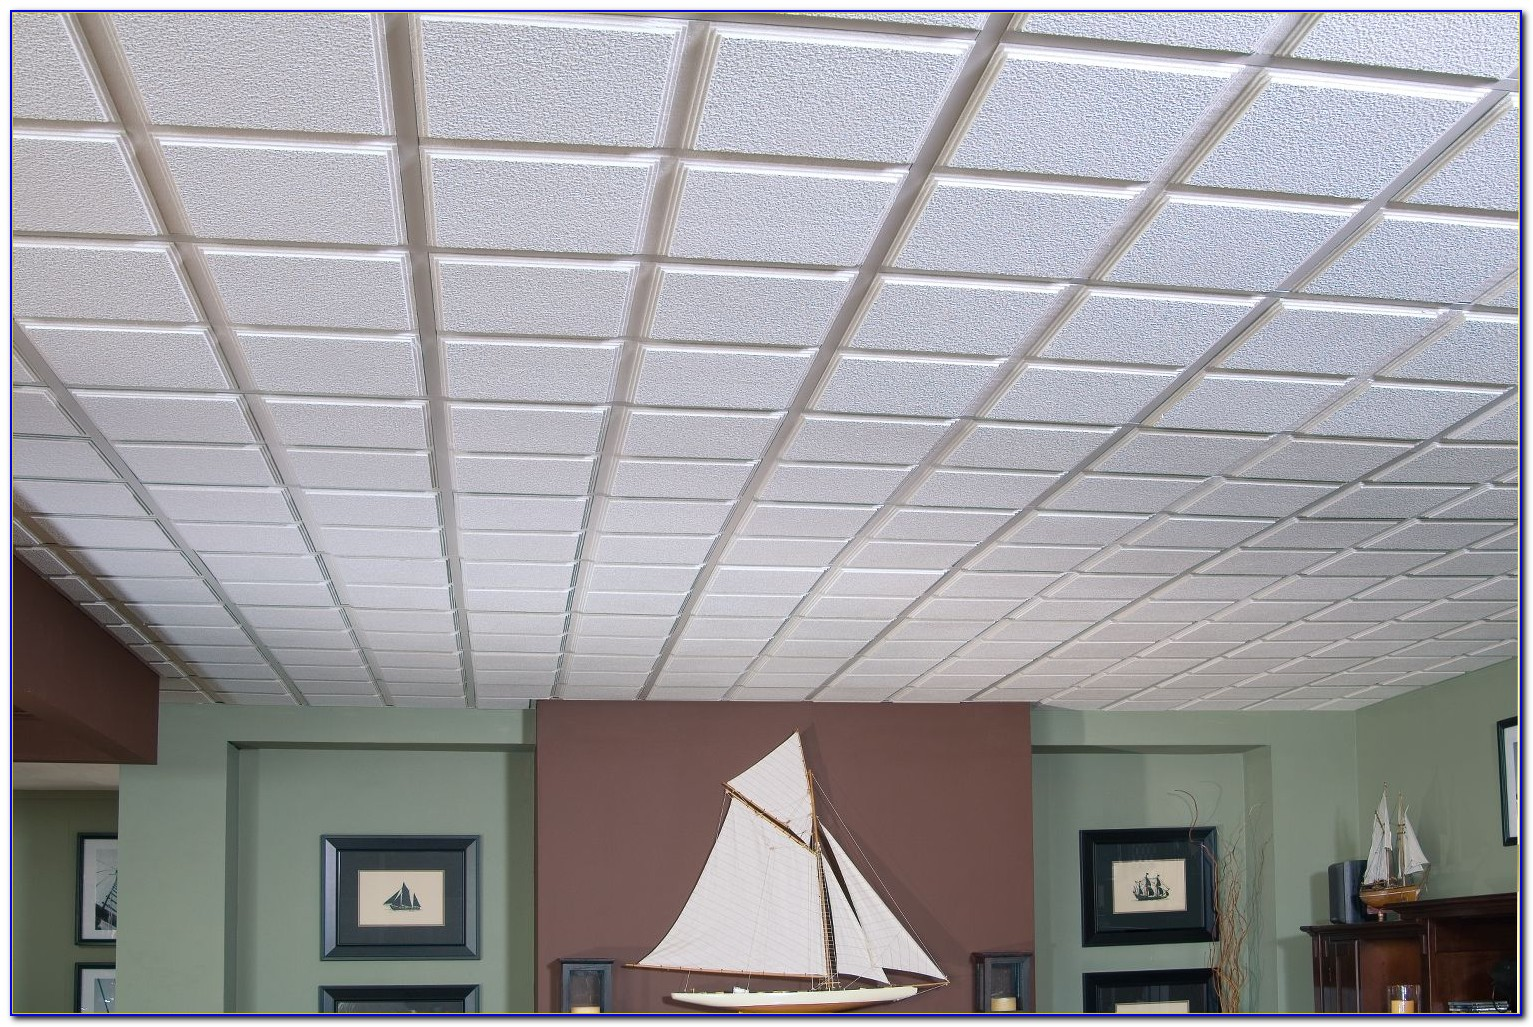 Beautiful 12 By 12 Ceiling Tiles Tall 2 By 4 Ceiling Tiles Shaped 24X24 Marble Floor Tiles 2X4 Drop Ceiling Tiles Home Depot Old 2X4 Tin Ceiling Tiles Fresh4X4 Ceramic Tile Basic Drop Ceiling Tile Showroom | Low Cost Drop Ceiling Tiles ..